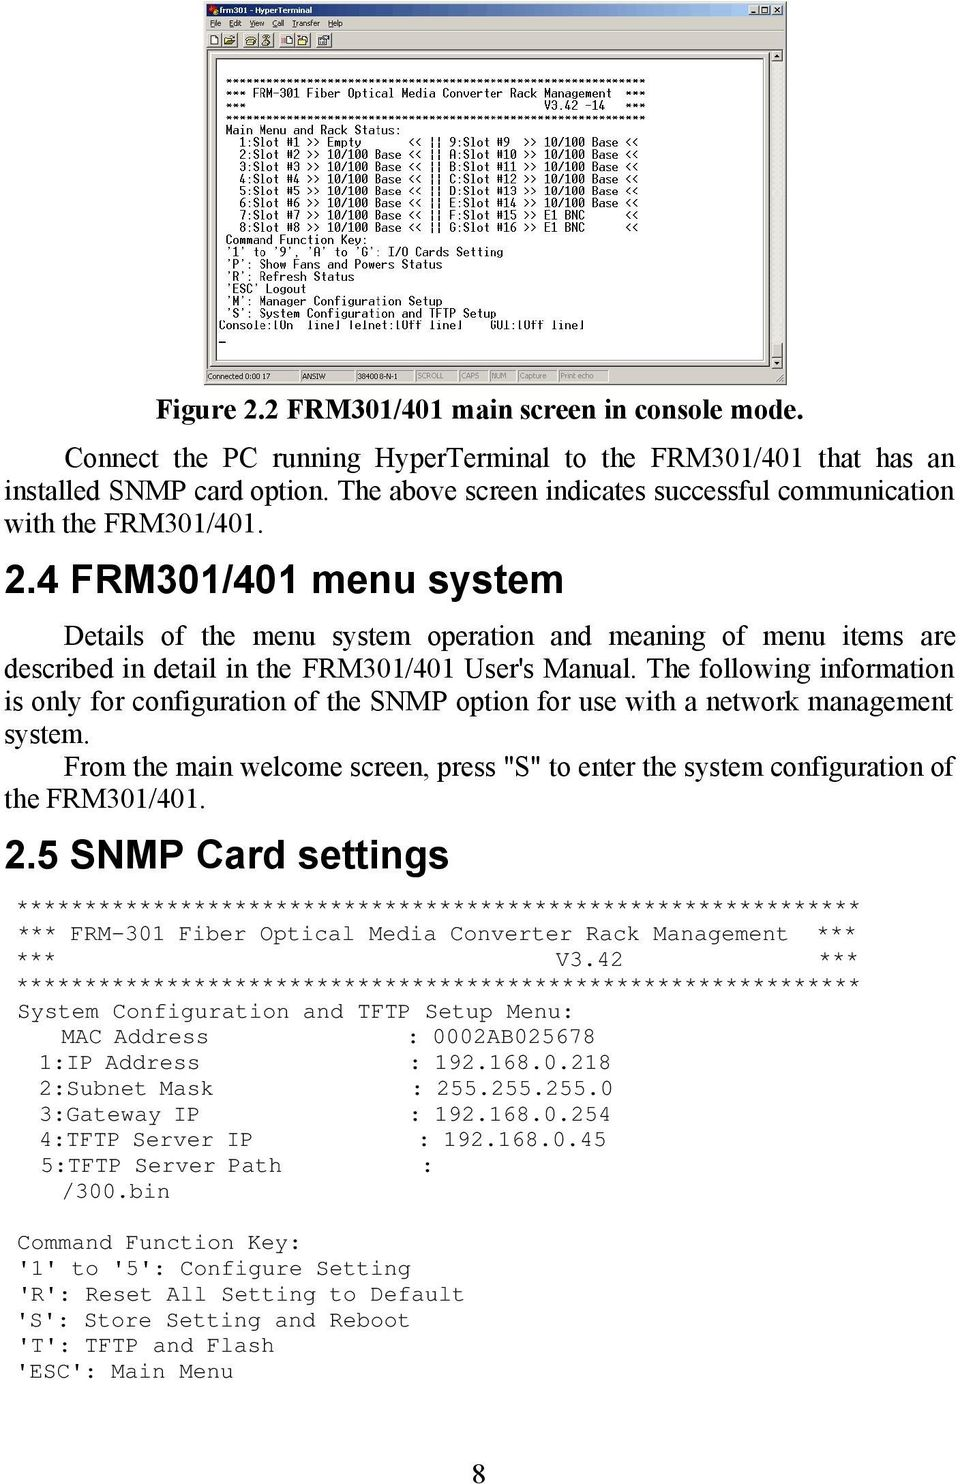 4 FRM301/401 menu system Details of the menu system operation and meaning of menu items are described in detail in the FRM301/401 User's Manual.